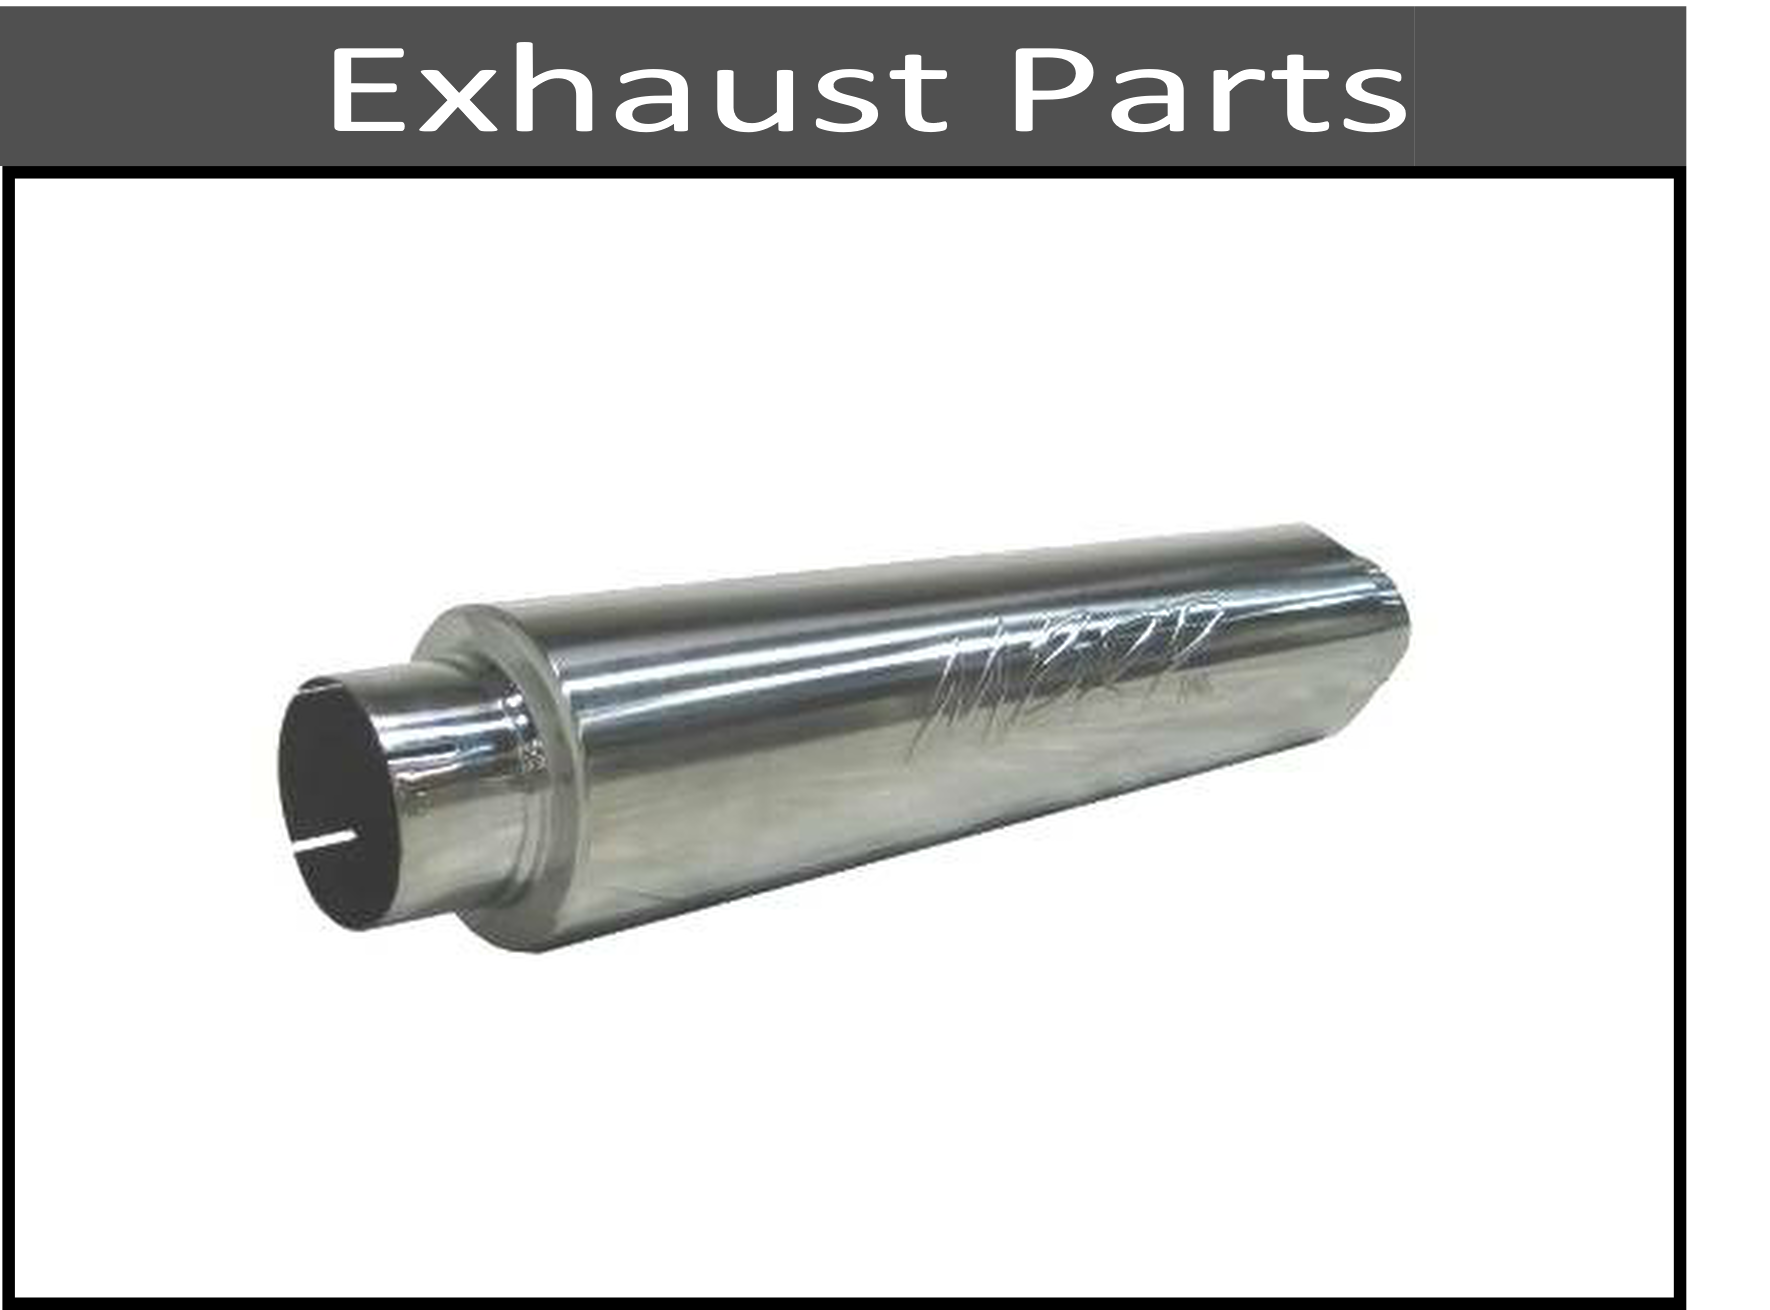 Exhaust Components and Parts